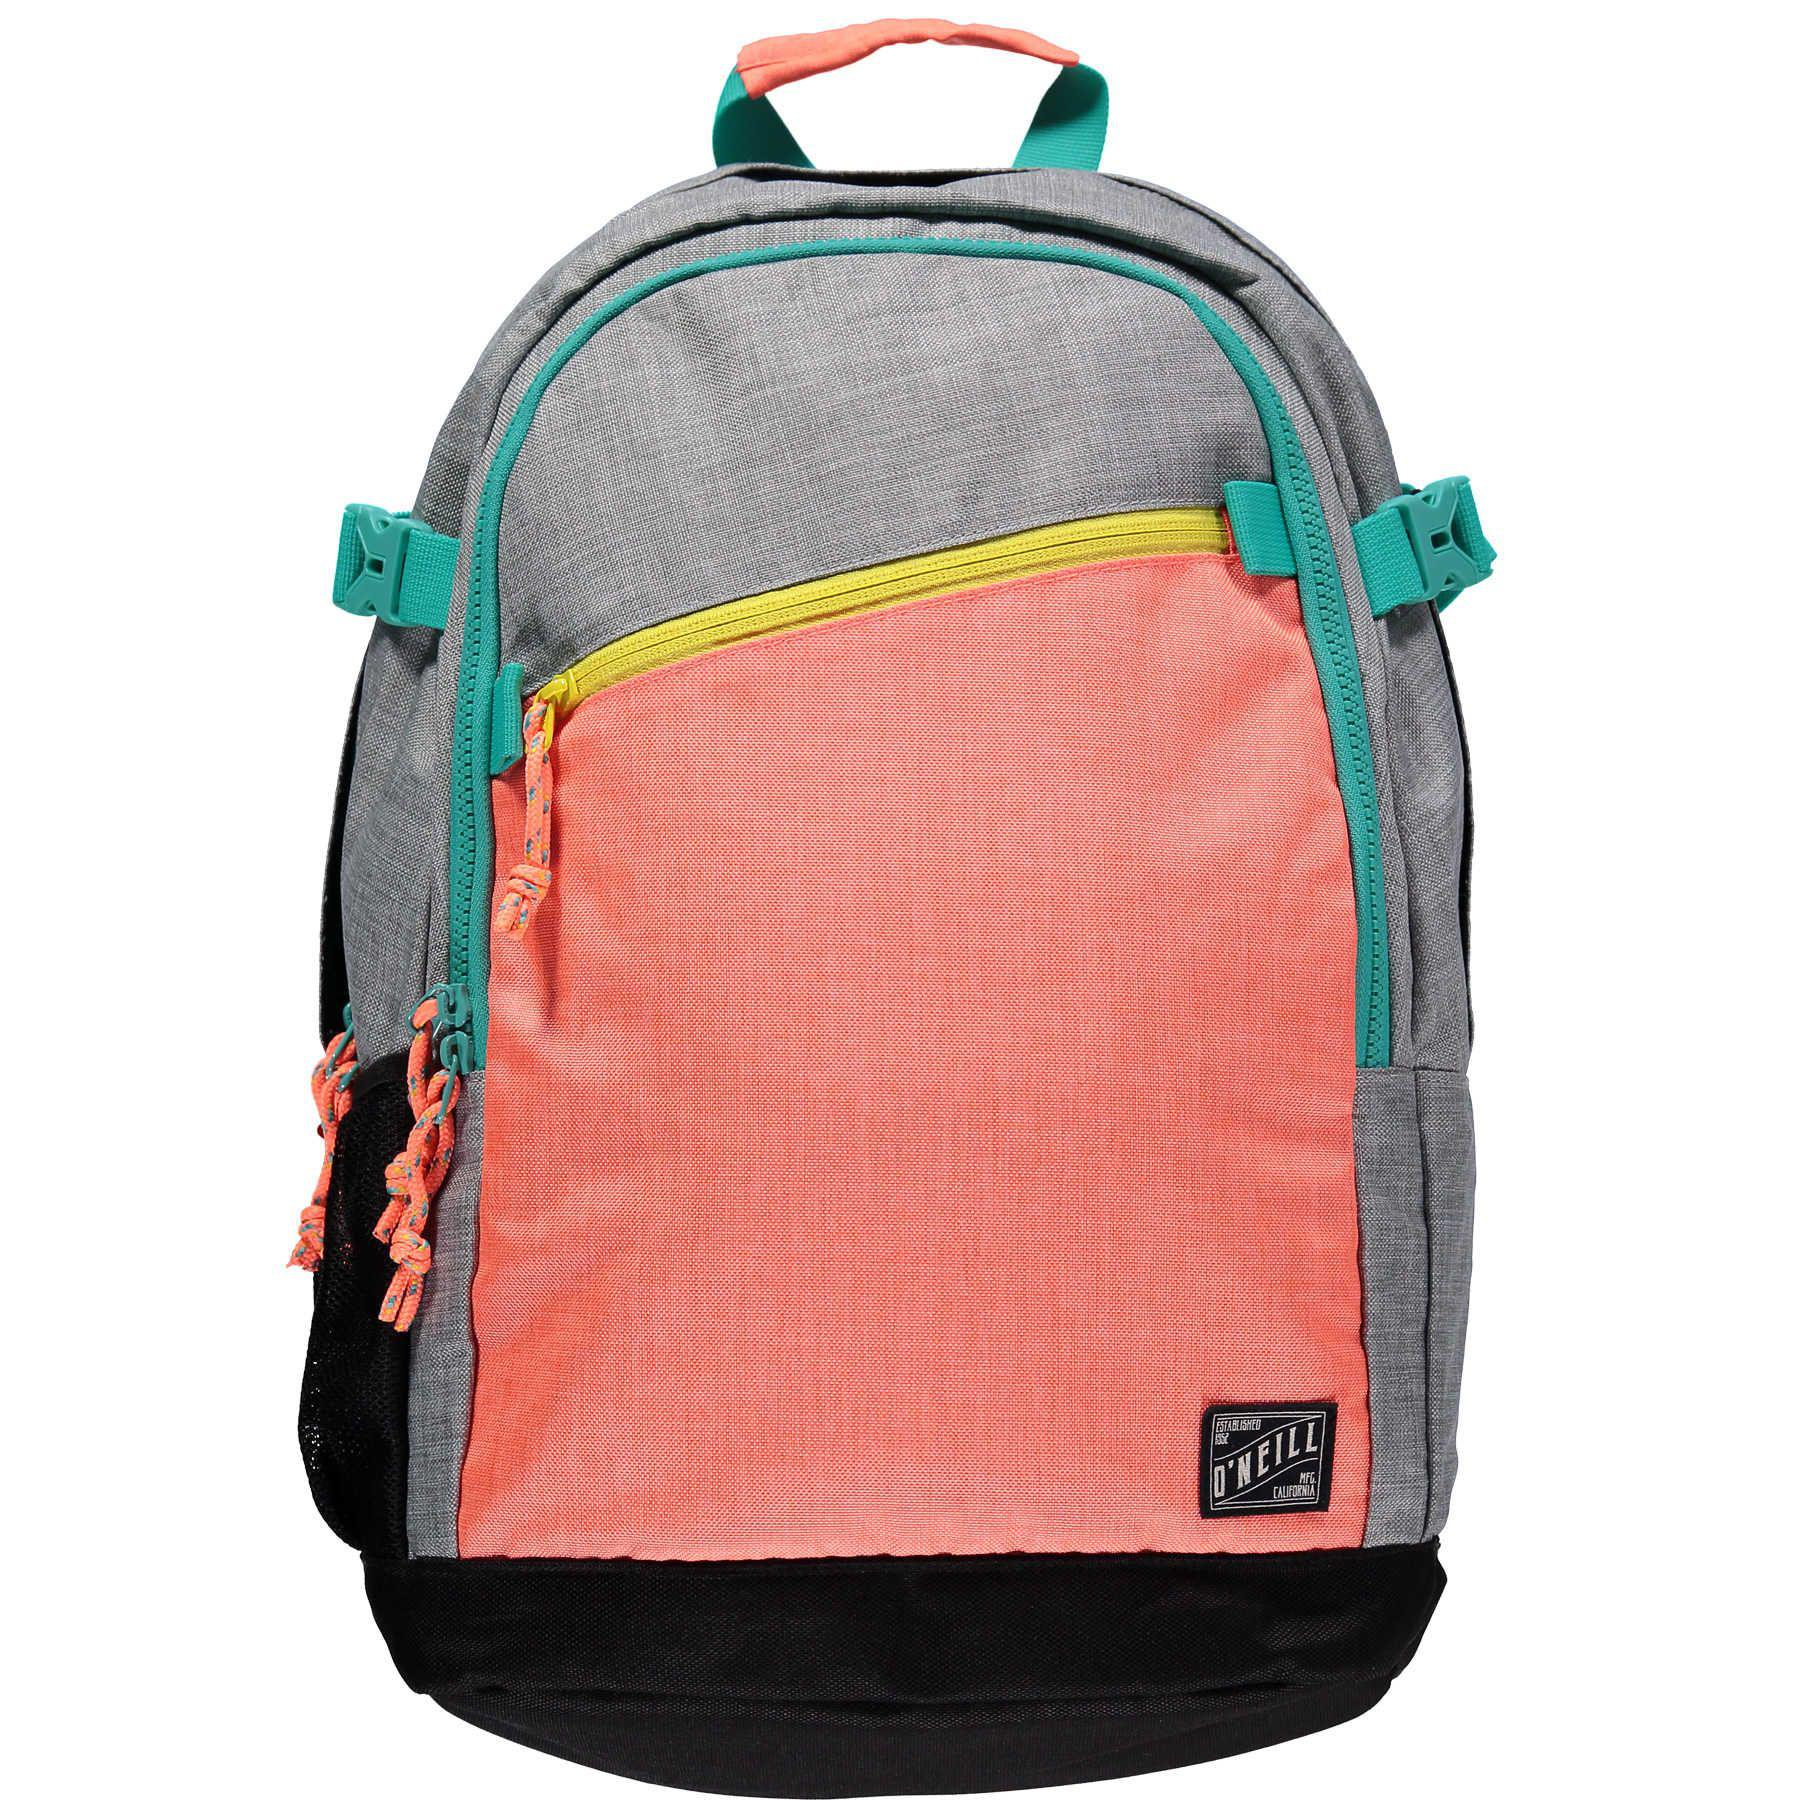 O'Neill Easy rider backpack Pink Mwn6b